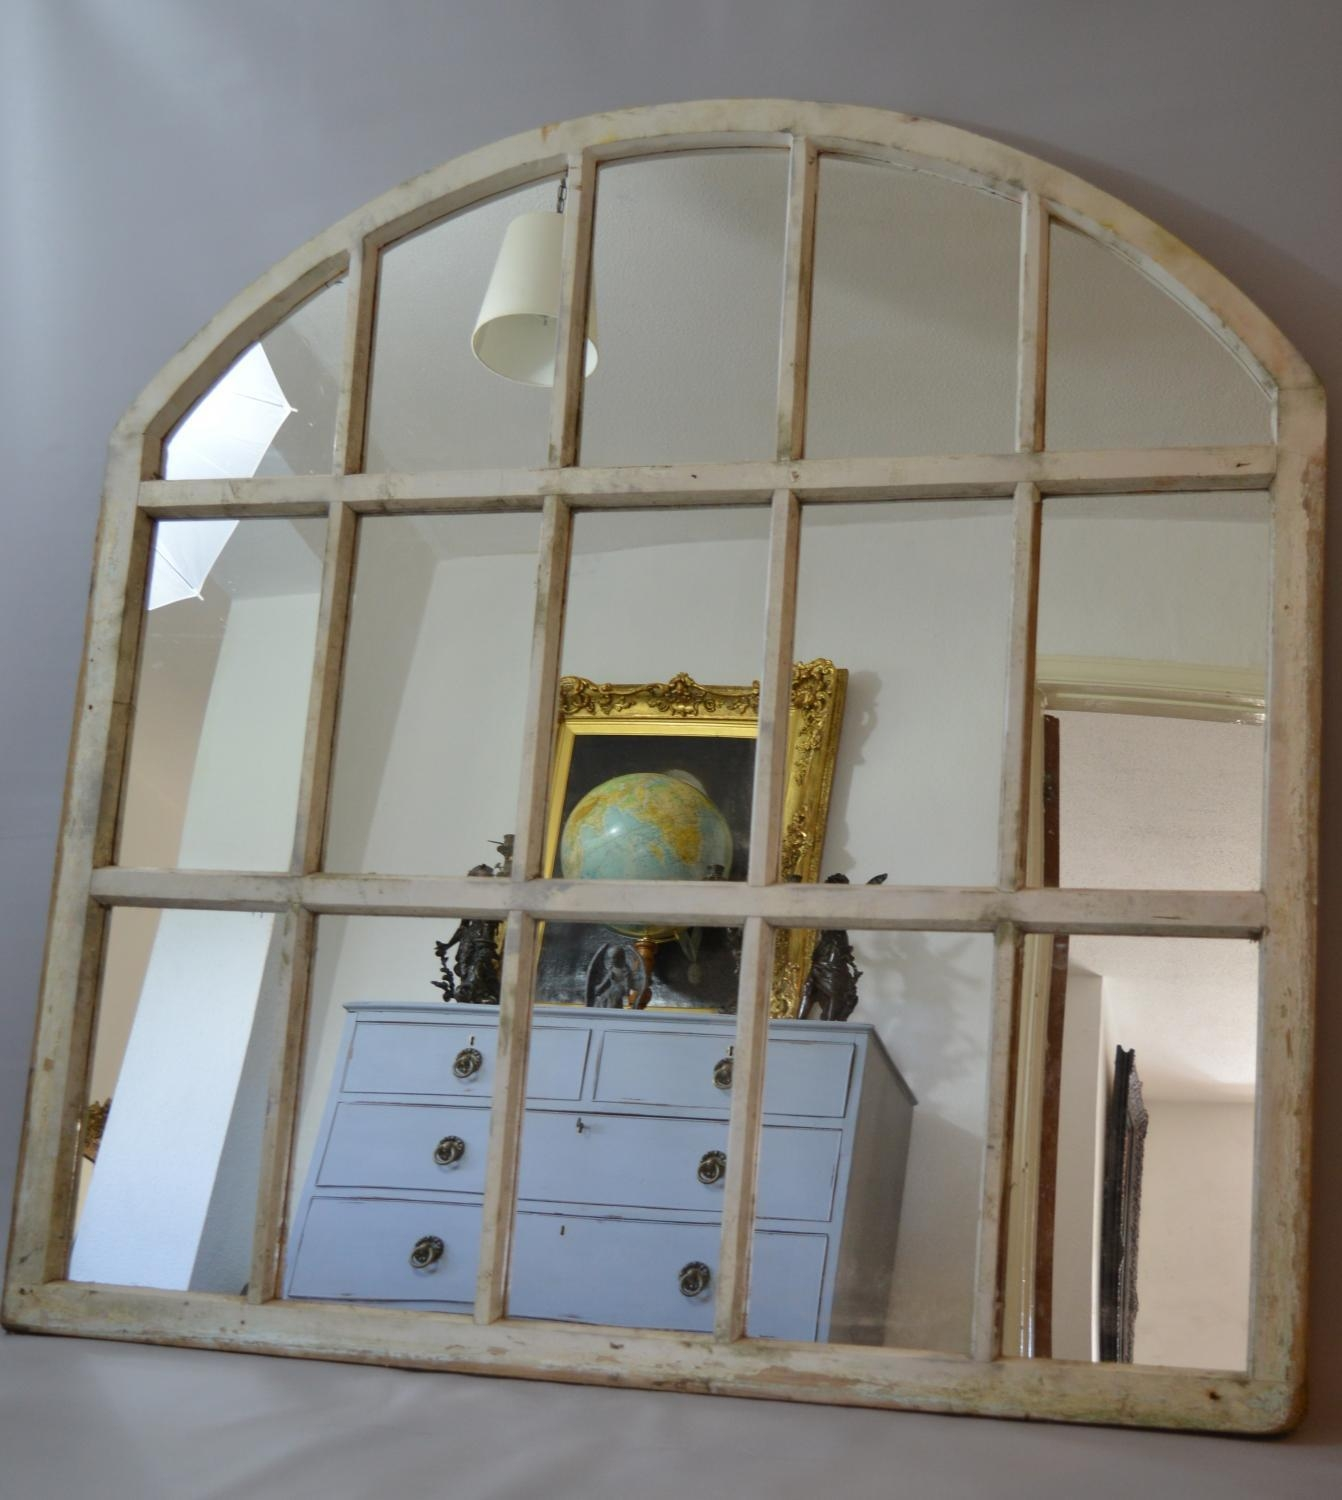 Arched Window Mirror Arched Window Pane Mirror Home Design Ideas Throughout Large Arched Mirrors (Image 5 of 15)